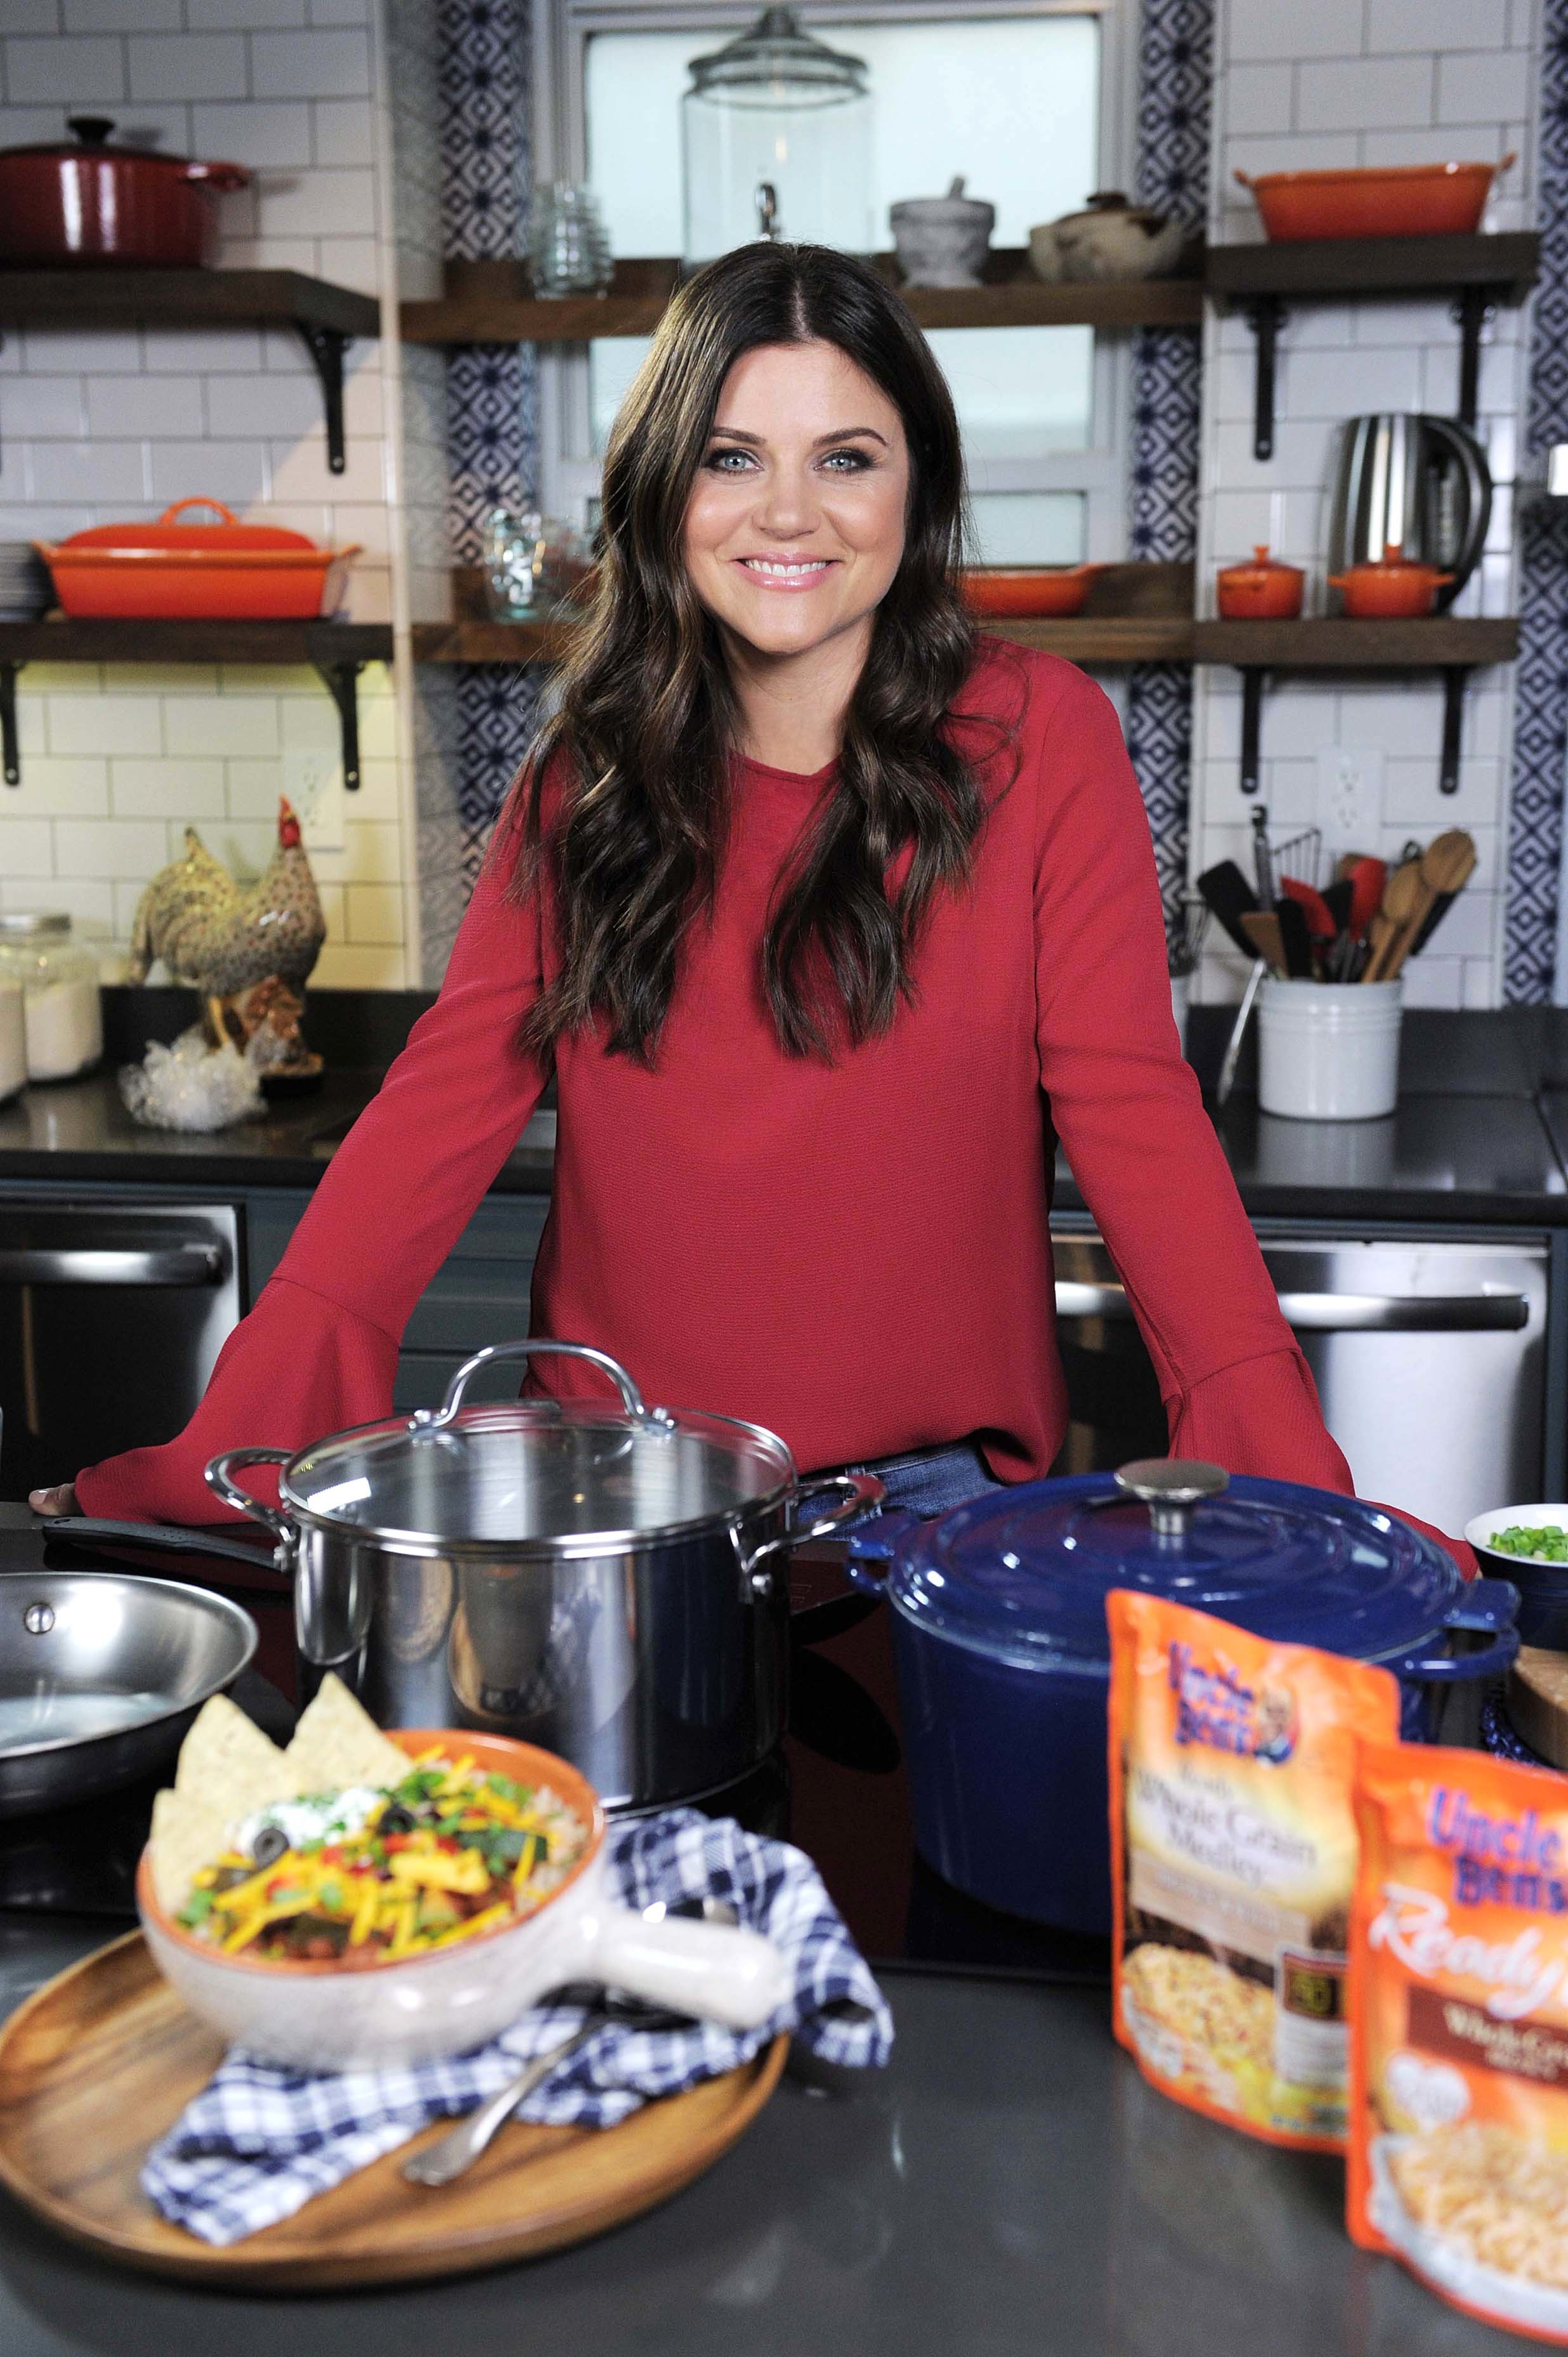 Tiffani Thiessen promotes Uncle Ben's Ben's Beginners campaign and contest at The Kitchen Table NYC in New York City on Aug. 28, 2017.